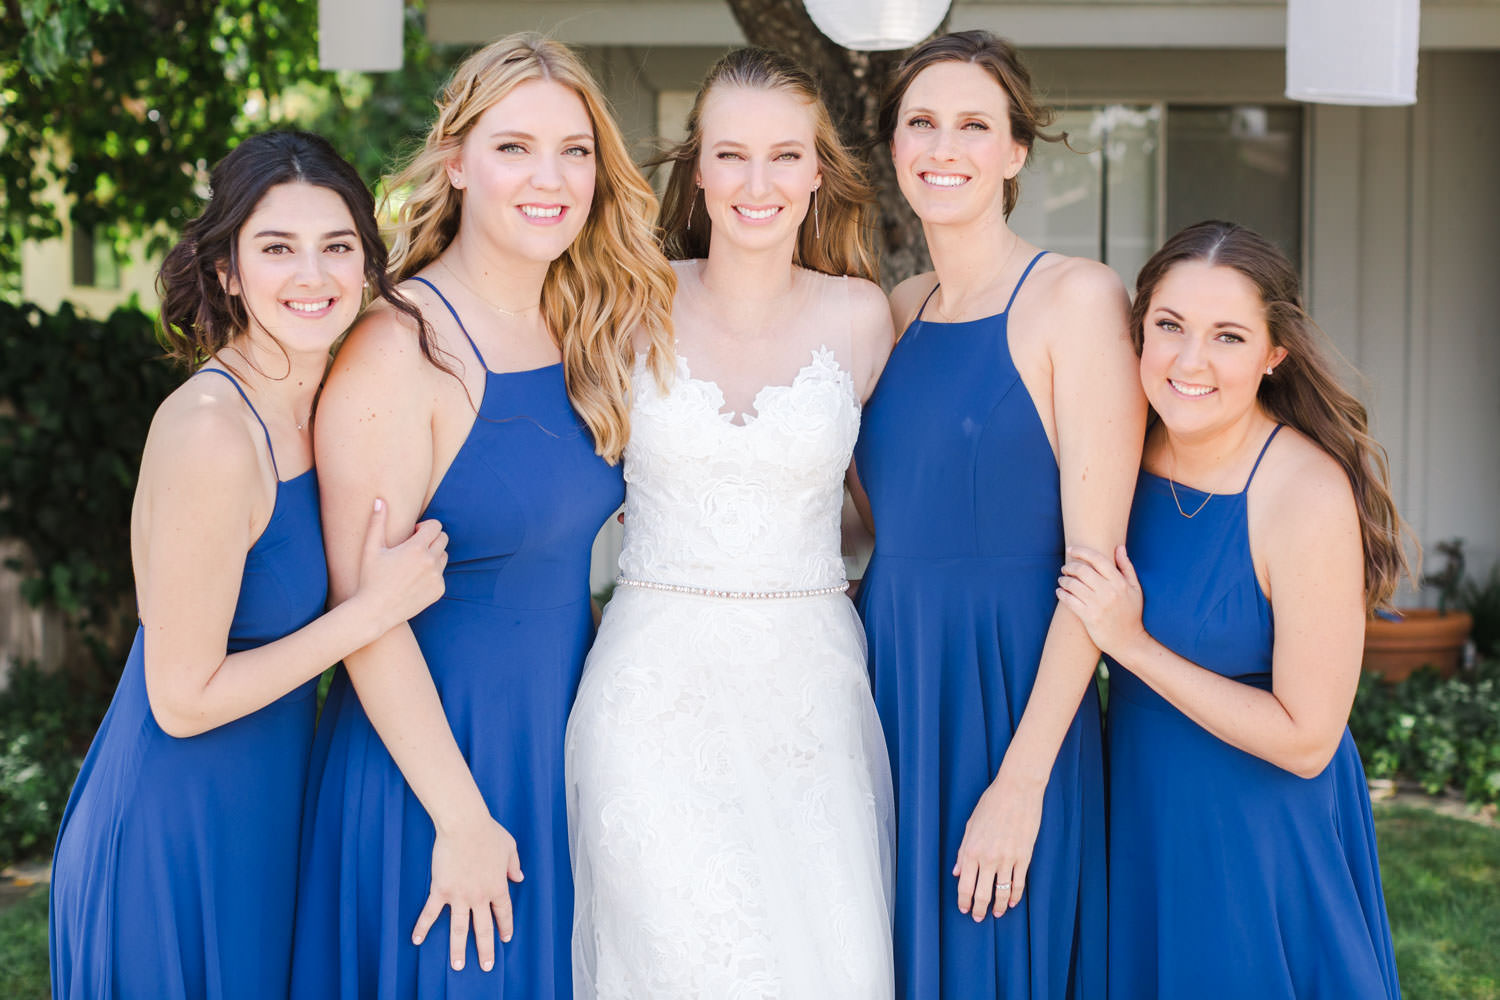 Bride with bridesmaids in blue dresses, Cavin Elizabeth Photography